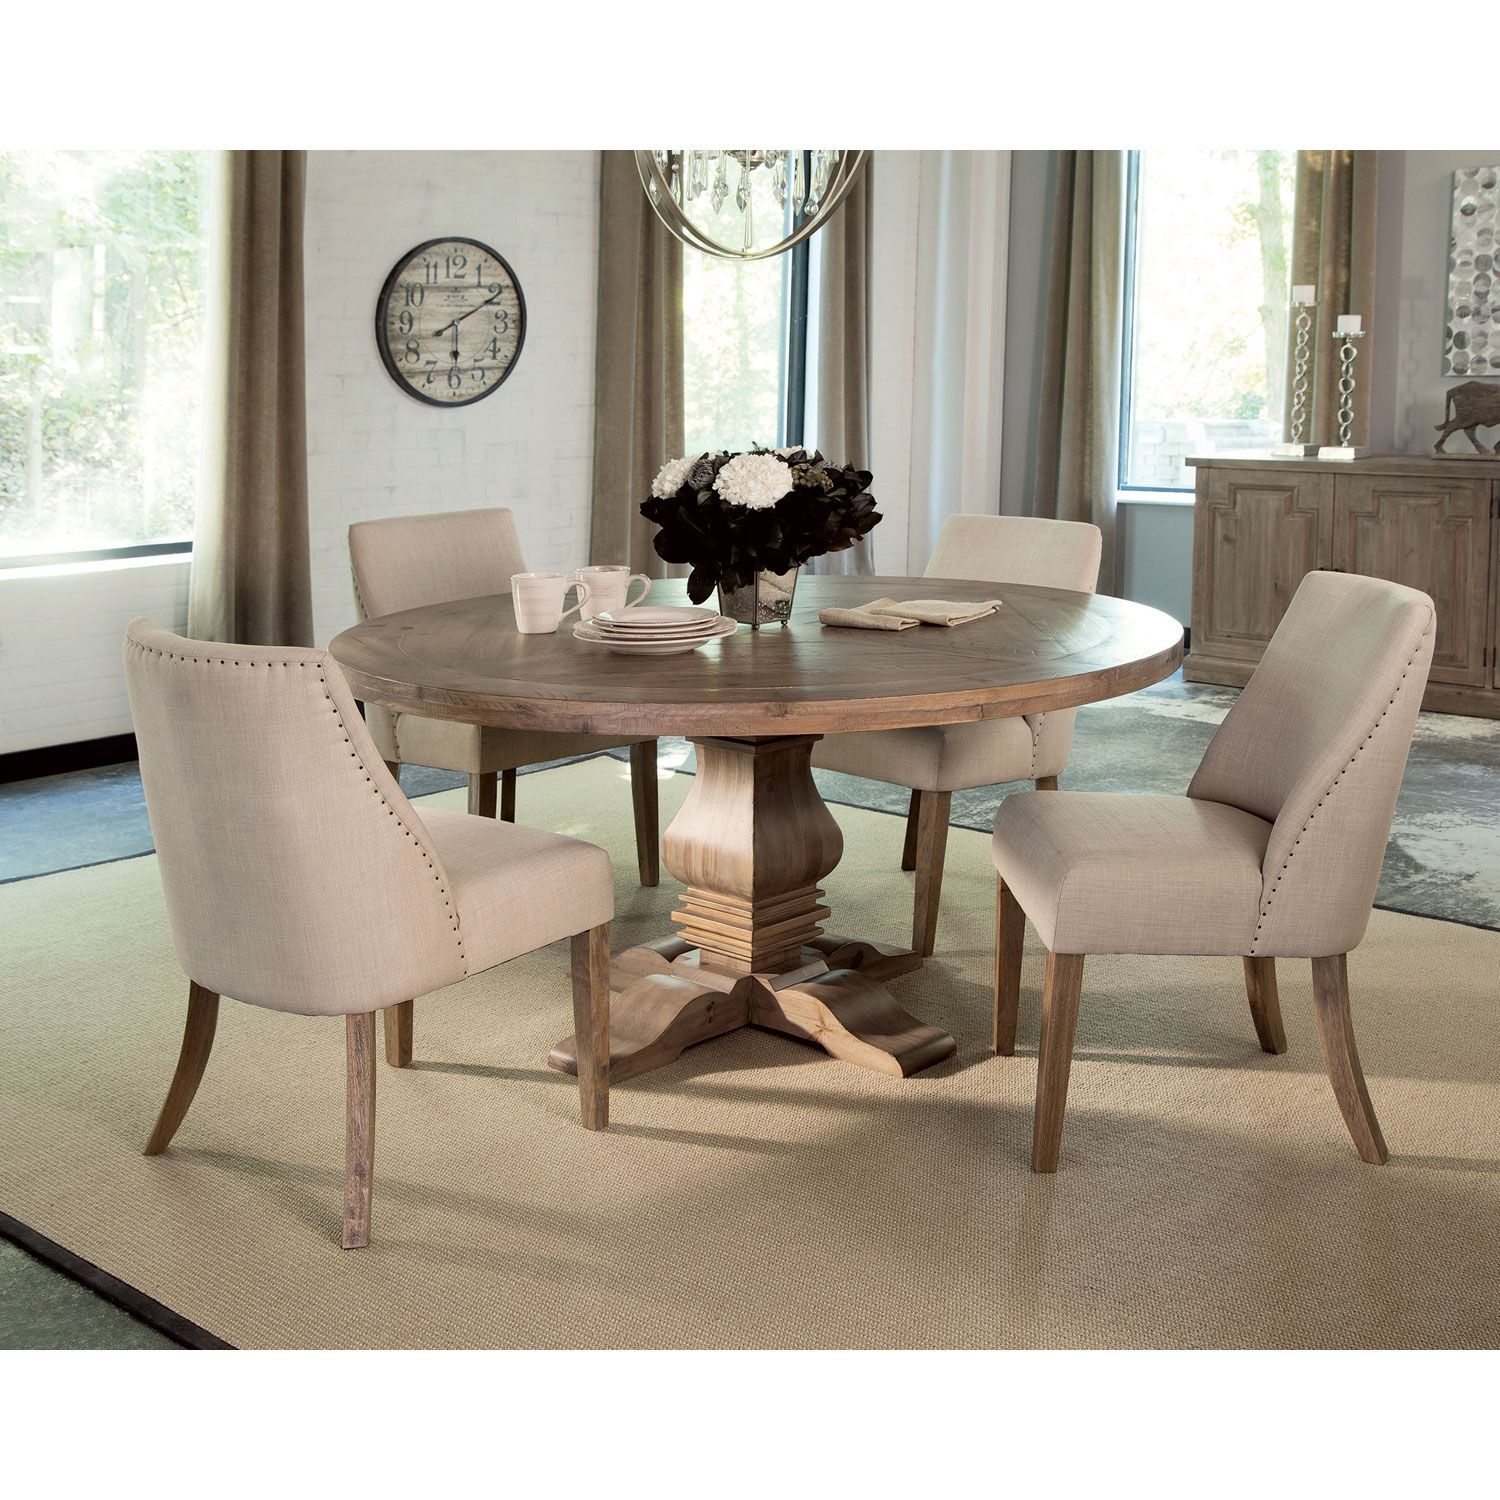 Donny Osmond Home Florence Pine Round Dining Table